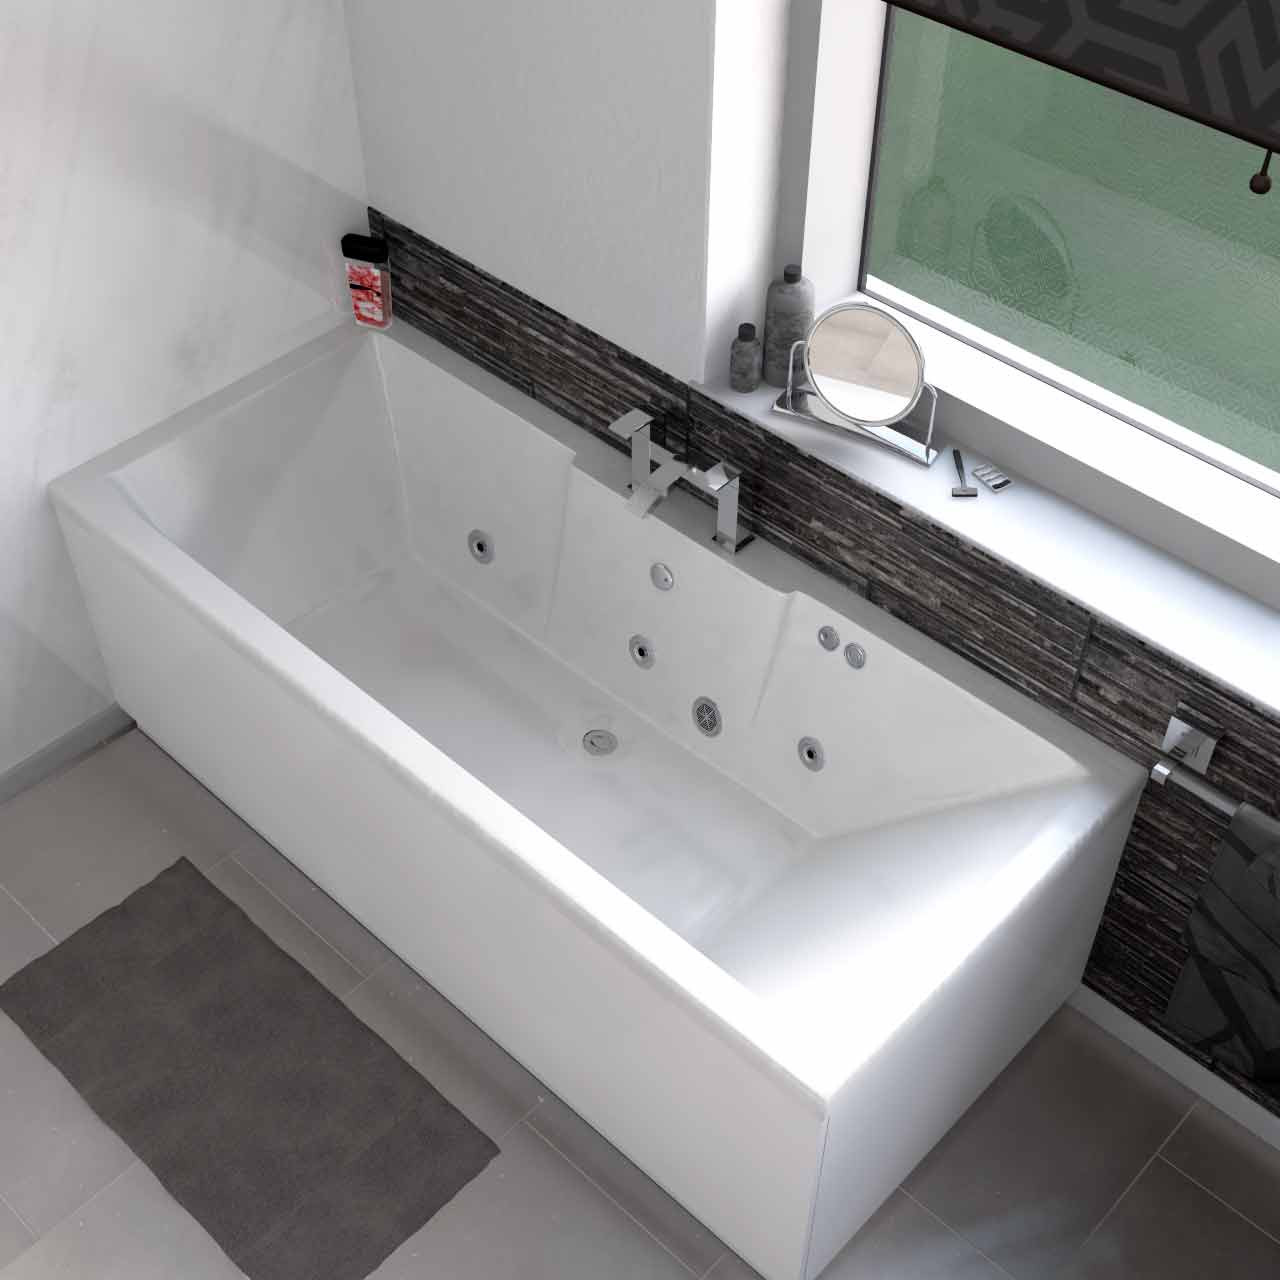 Legend Left Hand 6 Jet Chrome Flat Jet Whirlpool Bath 1700x750mm